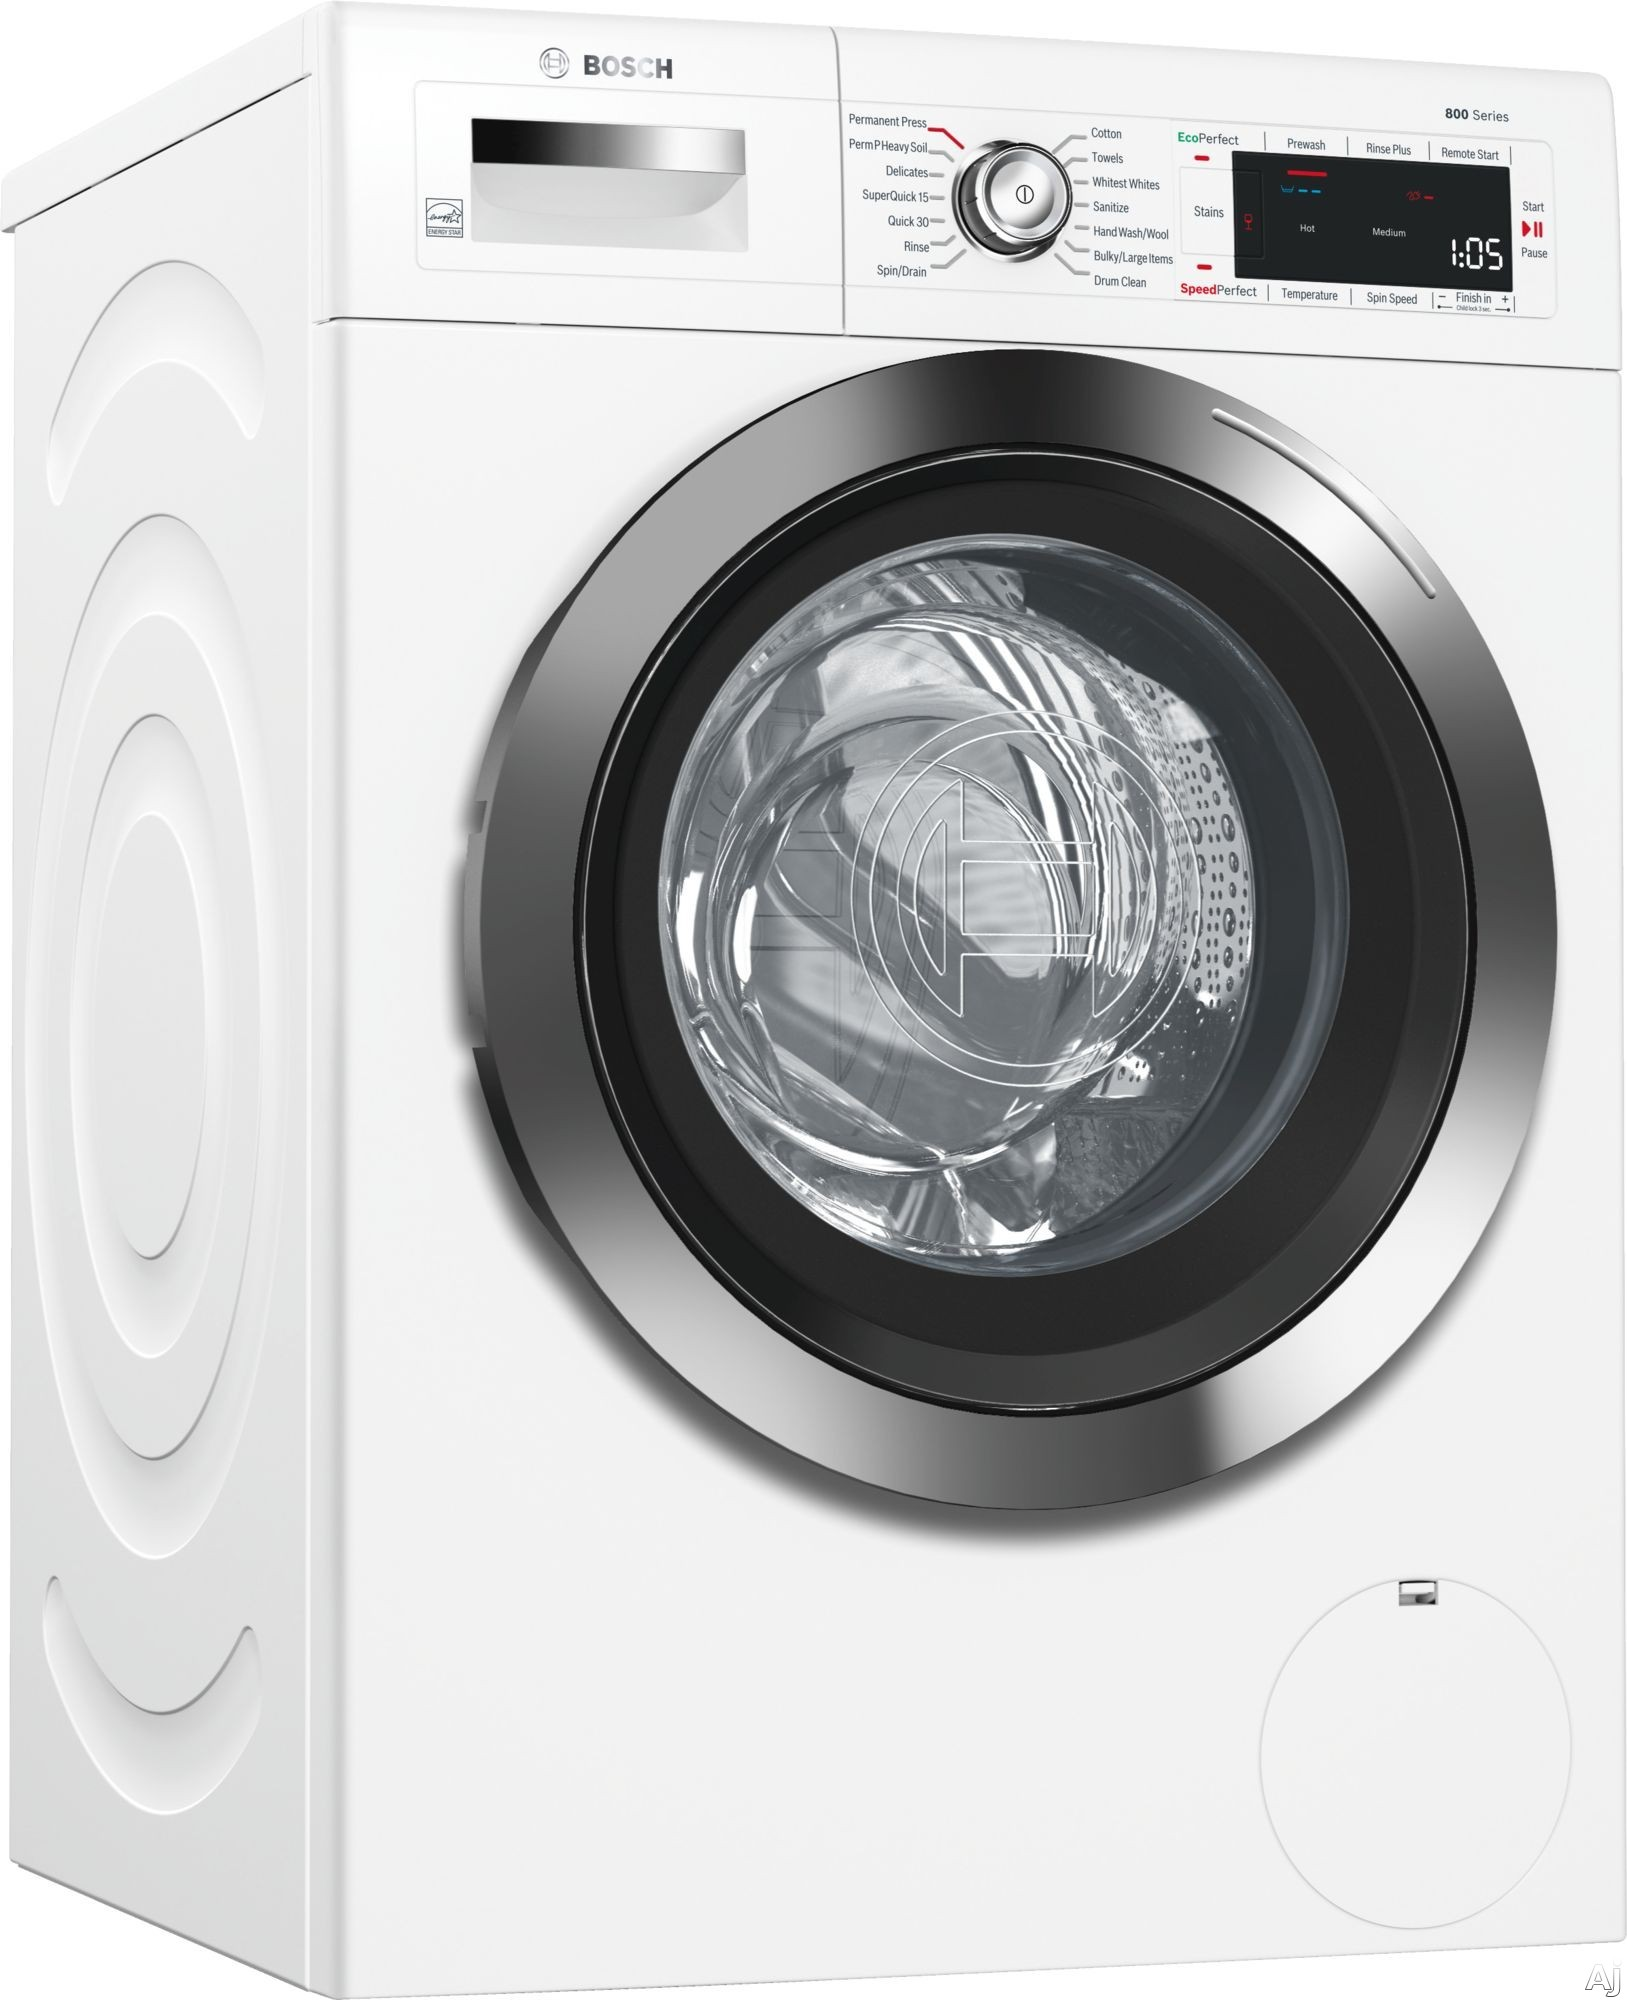 Bosch 800 Series WAW285H2UC 24 Inch Compact Washer with Home Connect, SpeedPerfect™, AquaStop® Plus, EcoSilence Motor™, 14 Wash Cycles, 10 Wash Options, ADA Compliant, ENERGY STAR® Rated and 2.2 cu. ft. Capacity WAW285H2UC